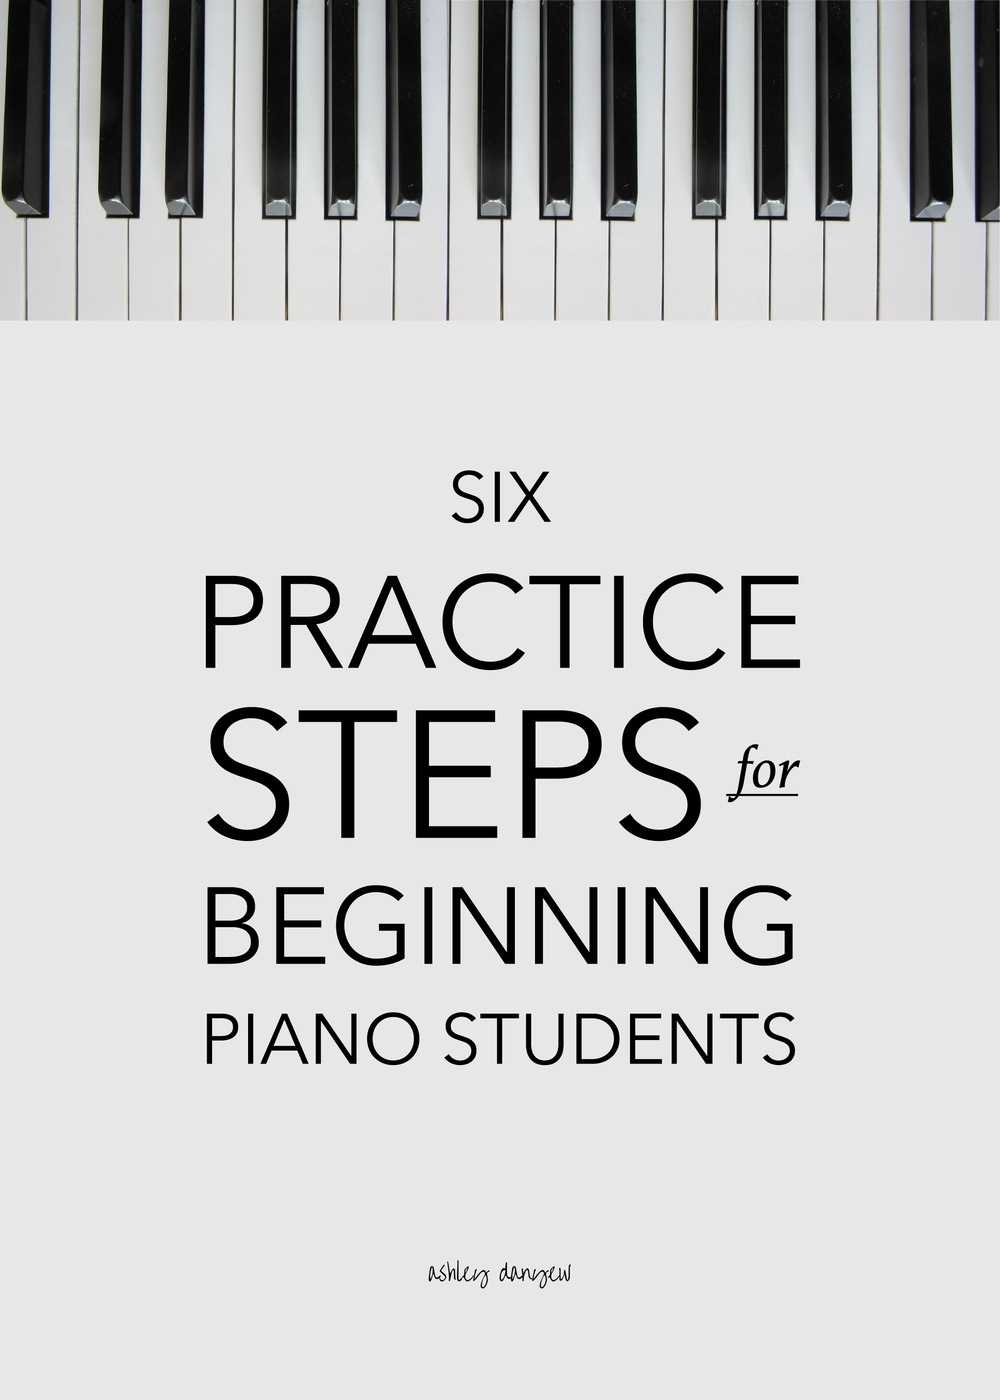 Six Practice Steps for Beginning Piano Students